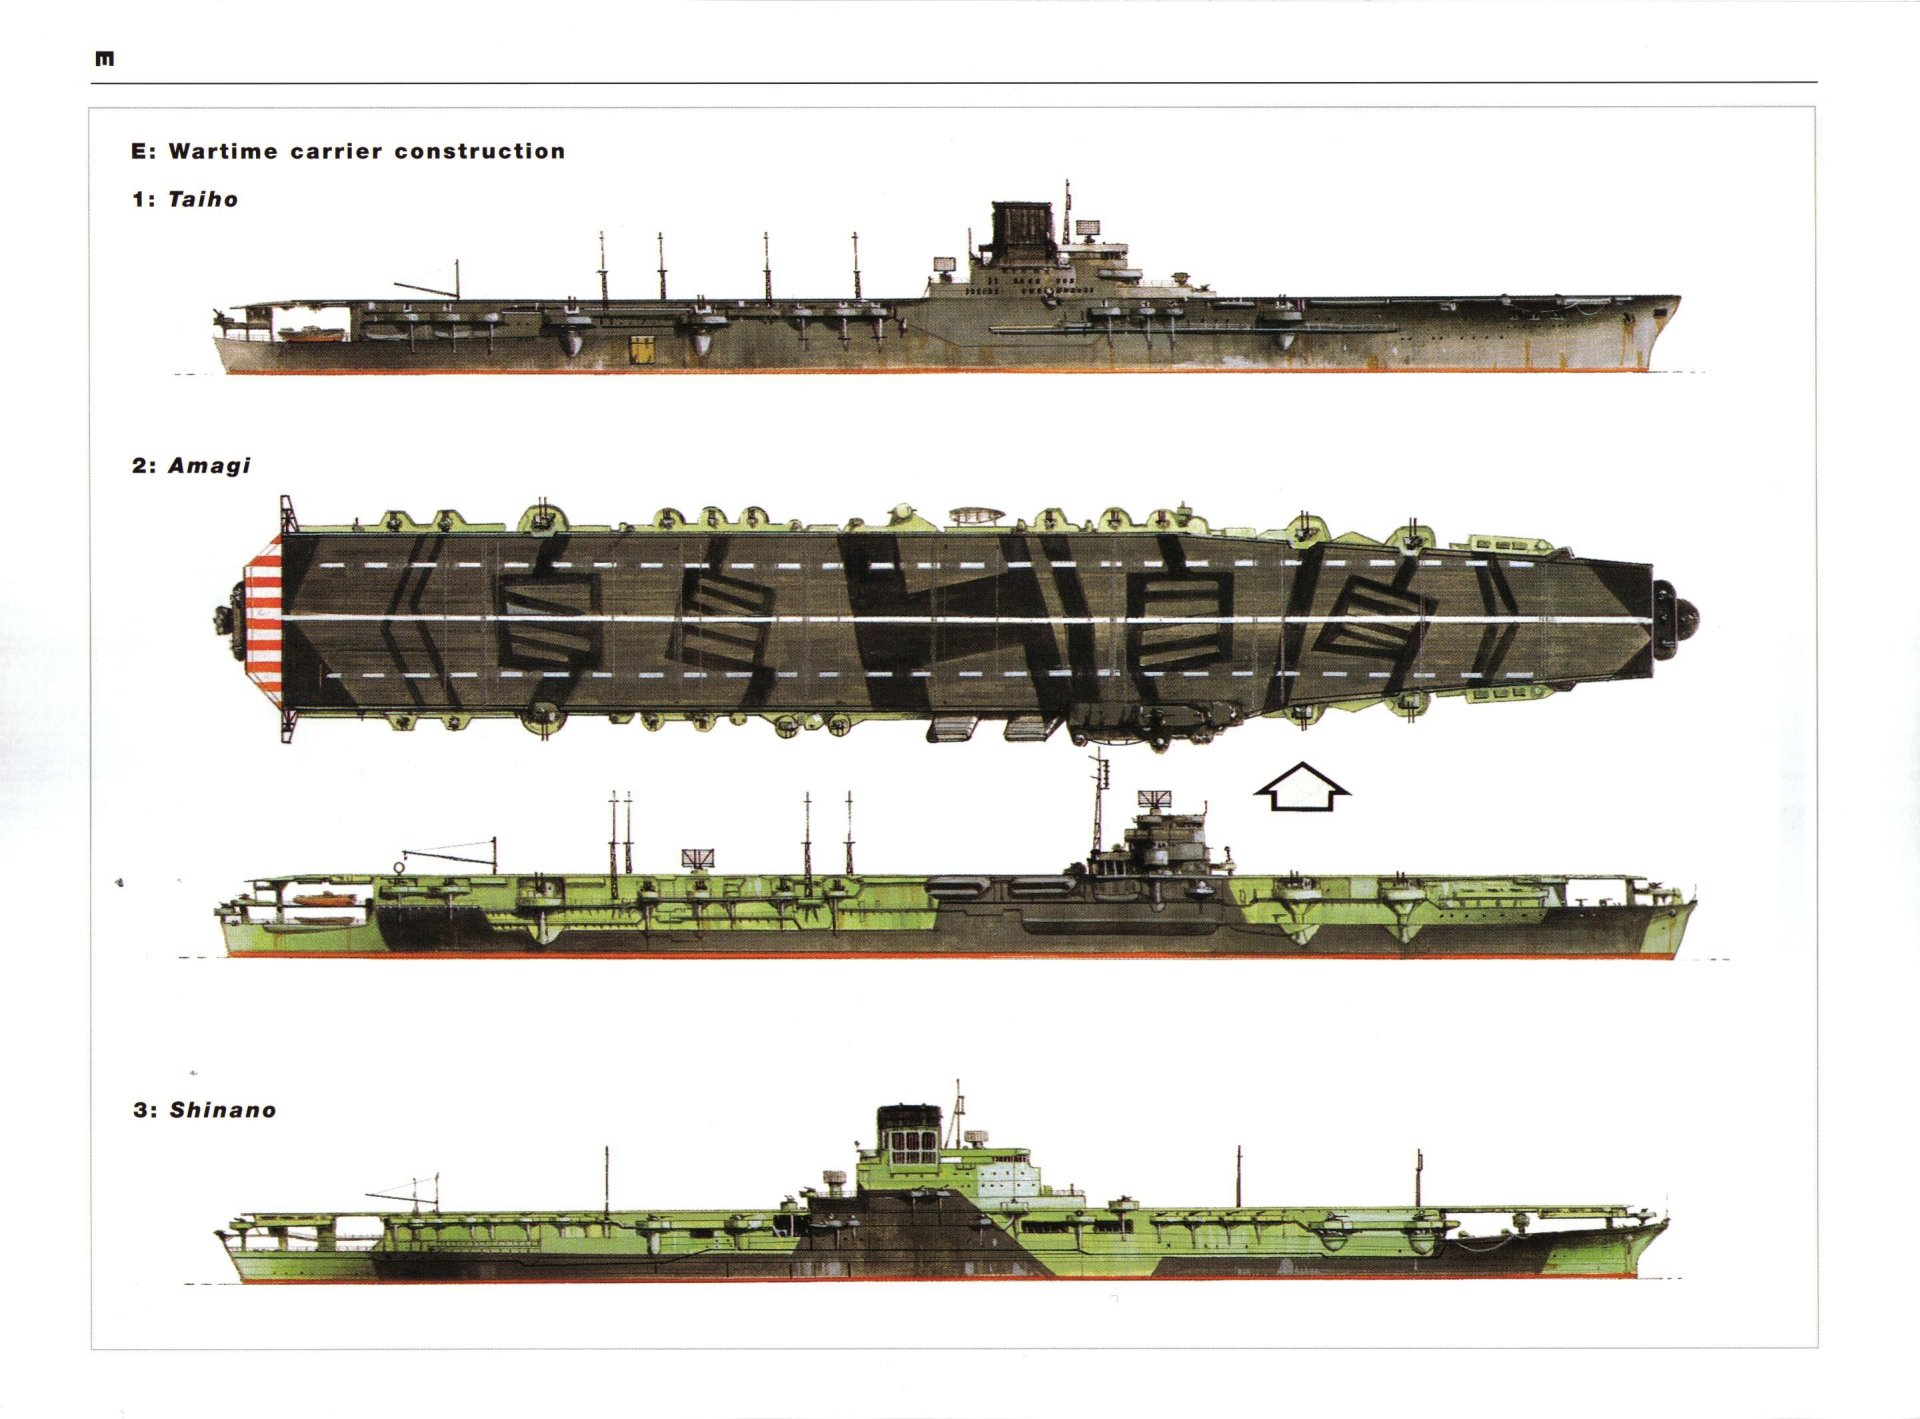 Military - Japanese Navy  Aircraft Carrier Japanese aircraft carrier Shinano Japanese aircraft carrier Amagi Japanese aircraft carrier Taiho Imperial Japanese Navy Wallpaper